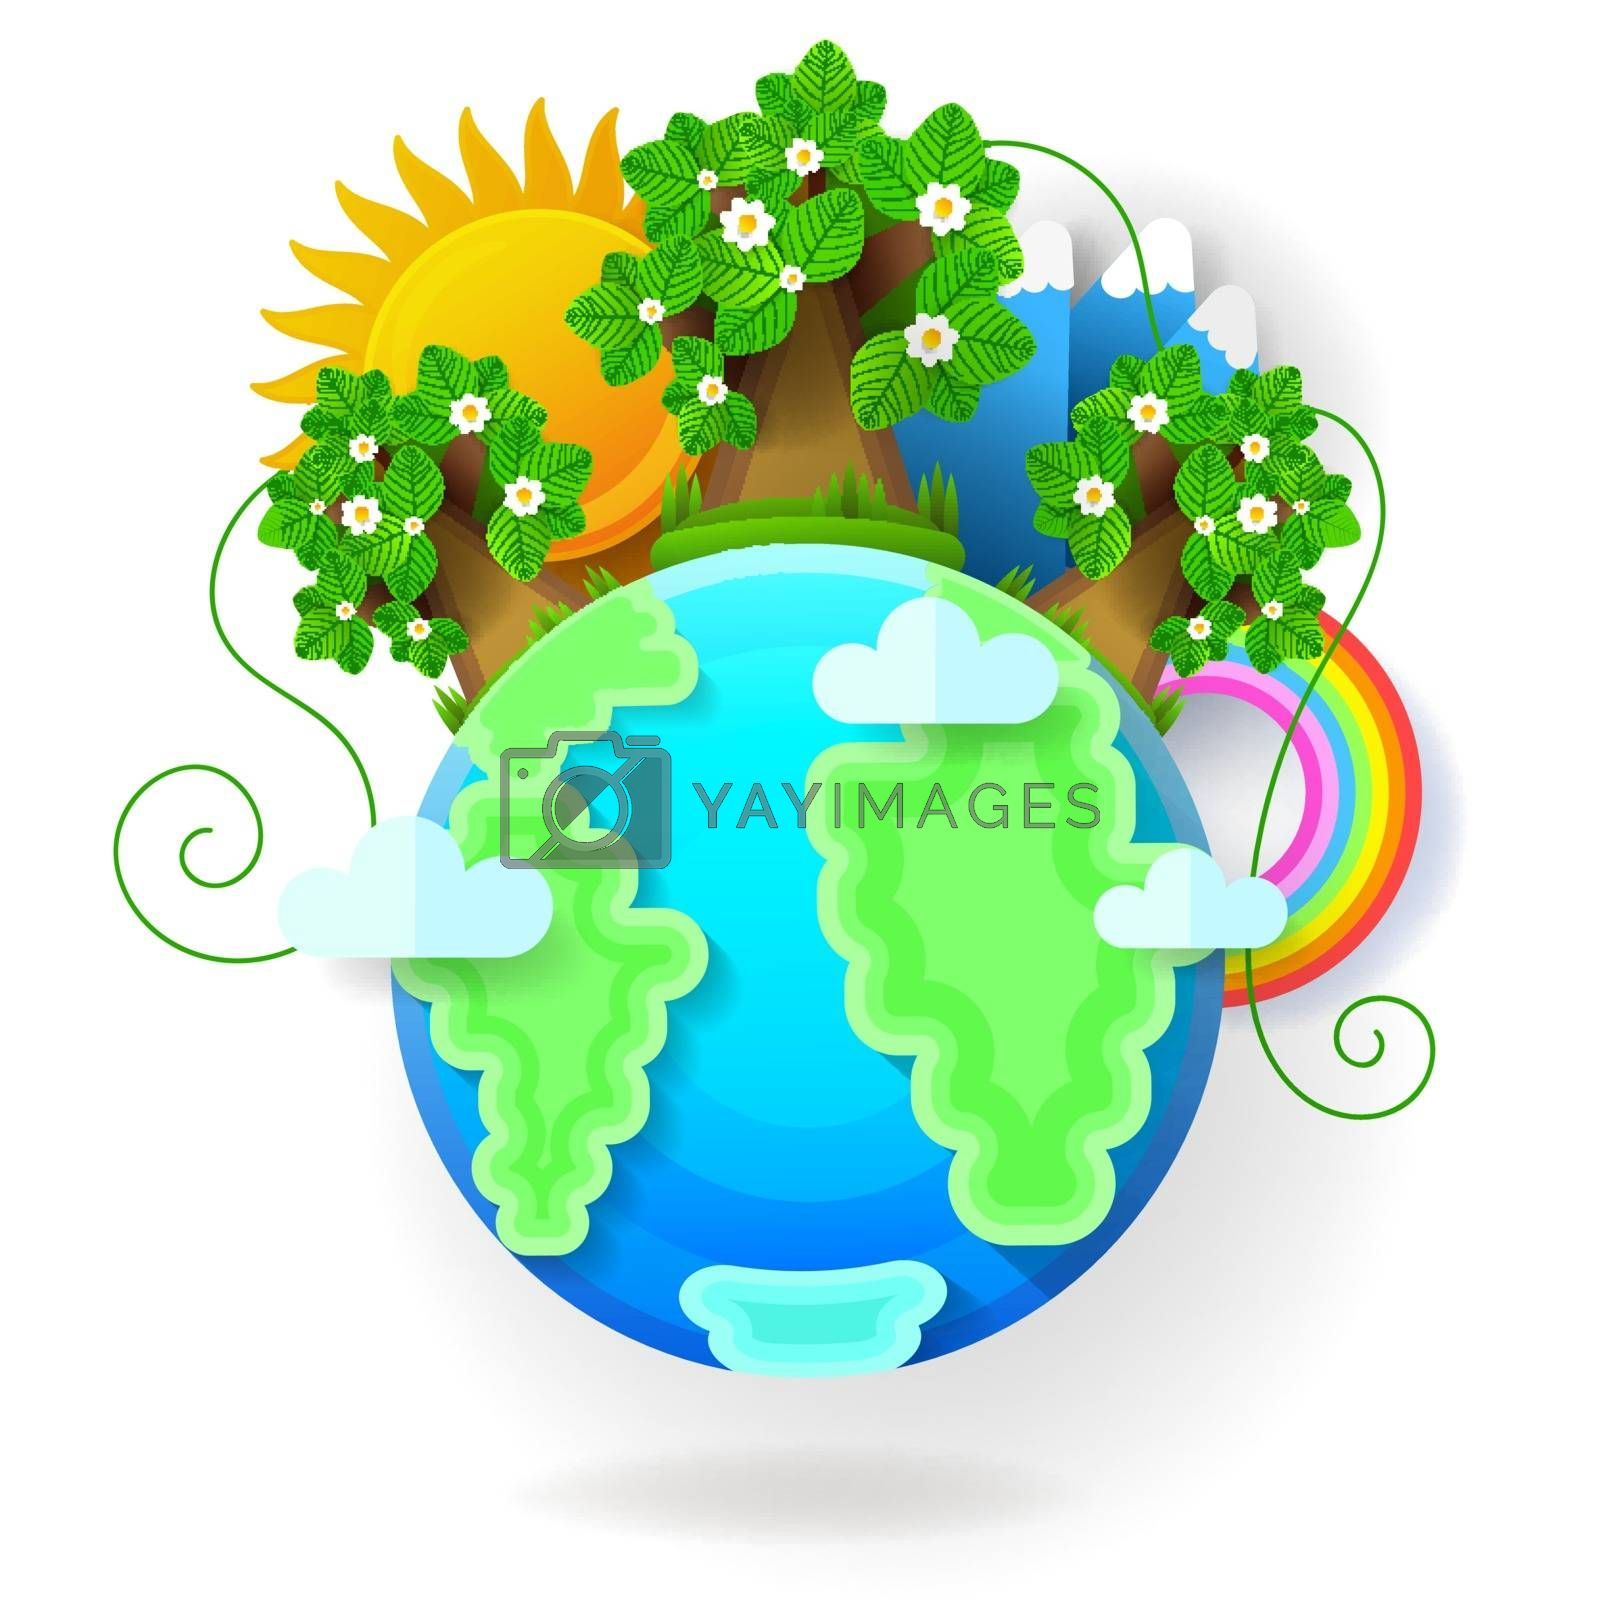 Vector illustration of earth globe. A blue planet with clouds by brylov